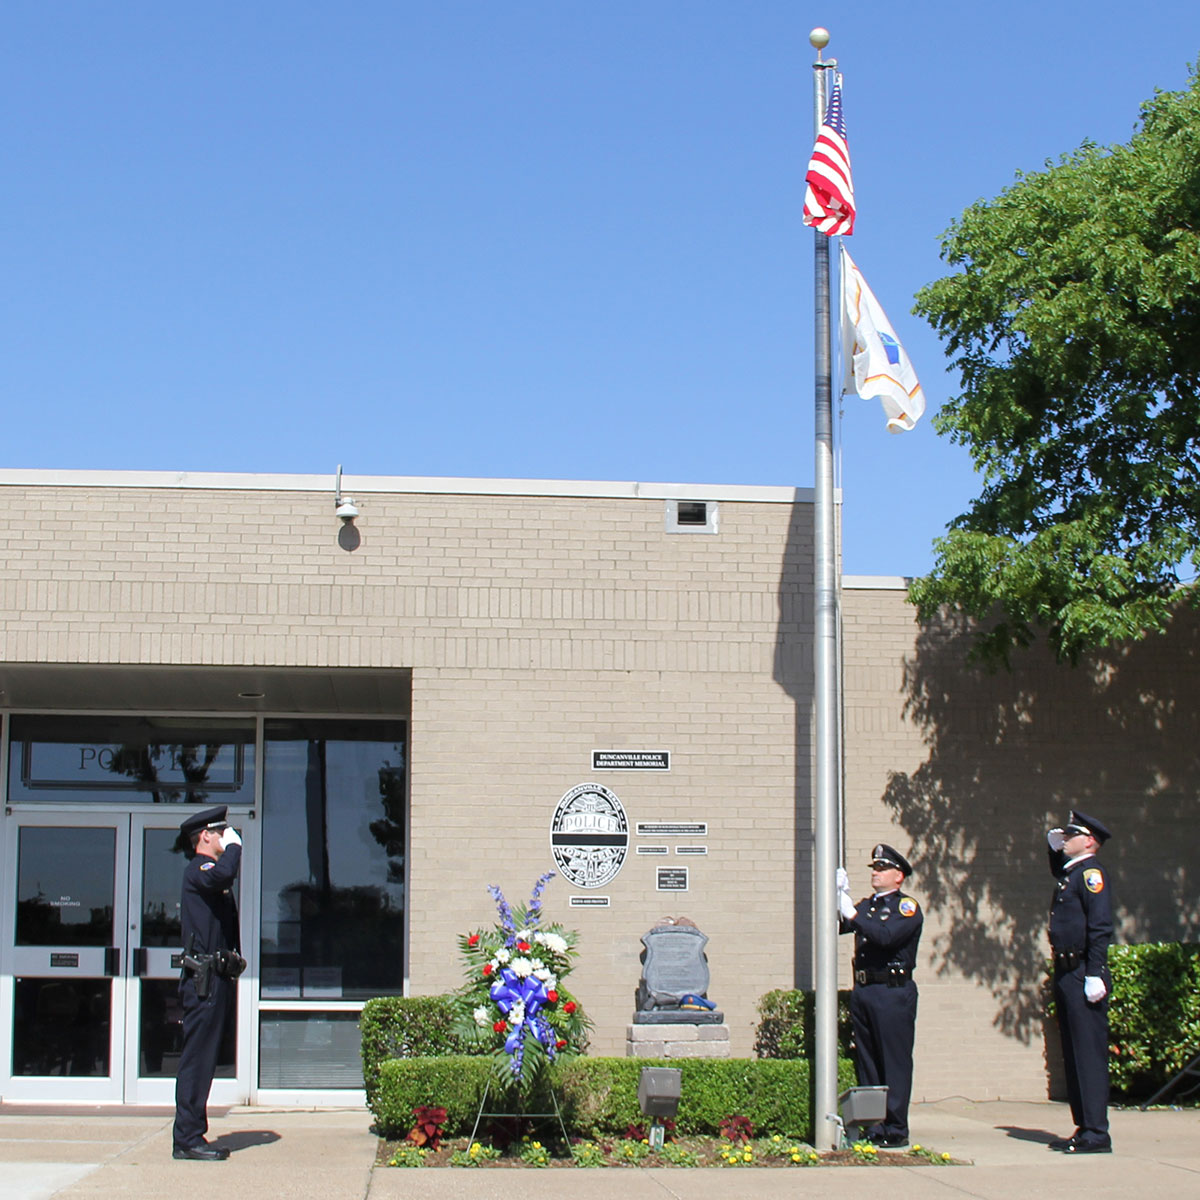 Duncanville Police Honor Guard - City of Duncanville, Texas, USA